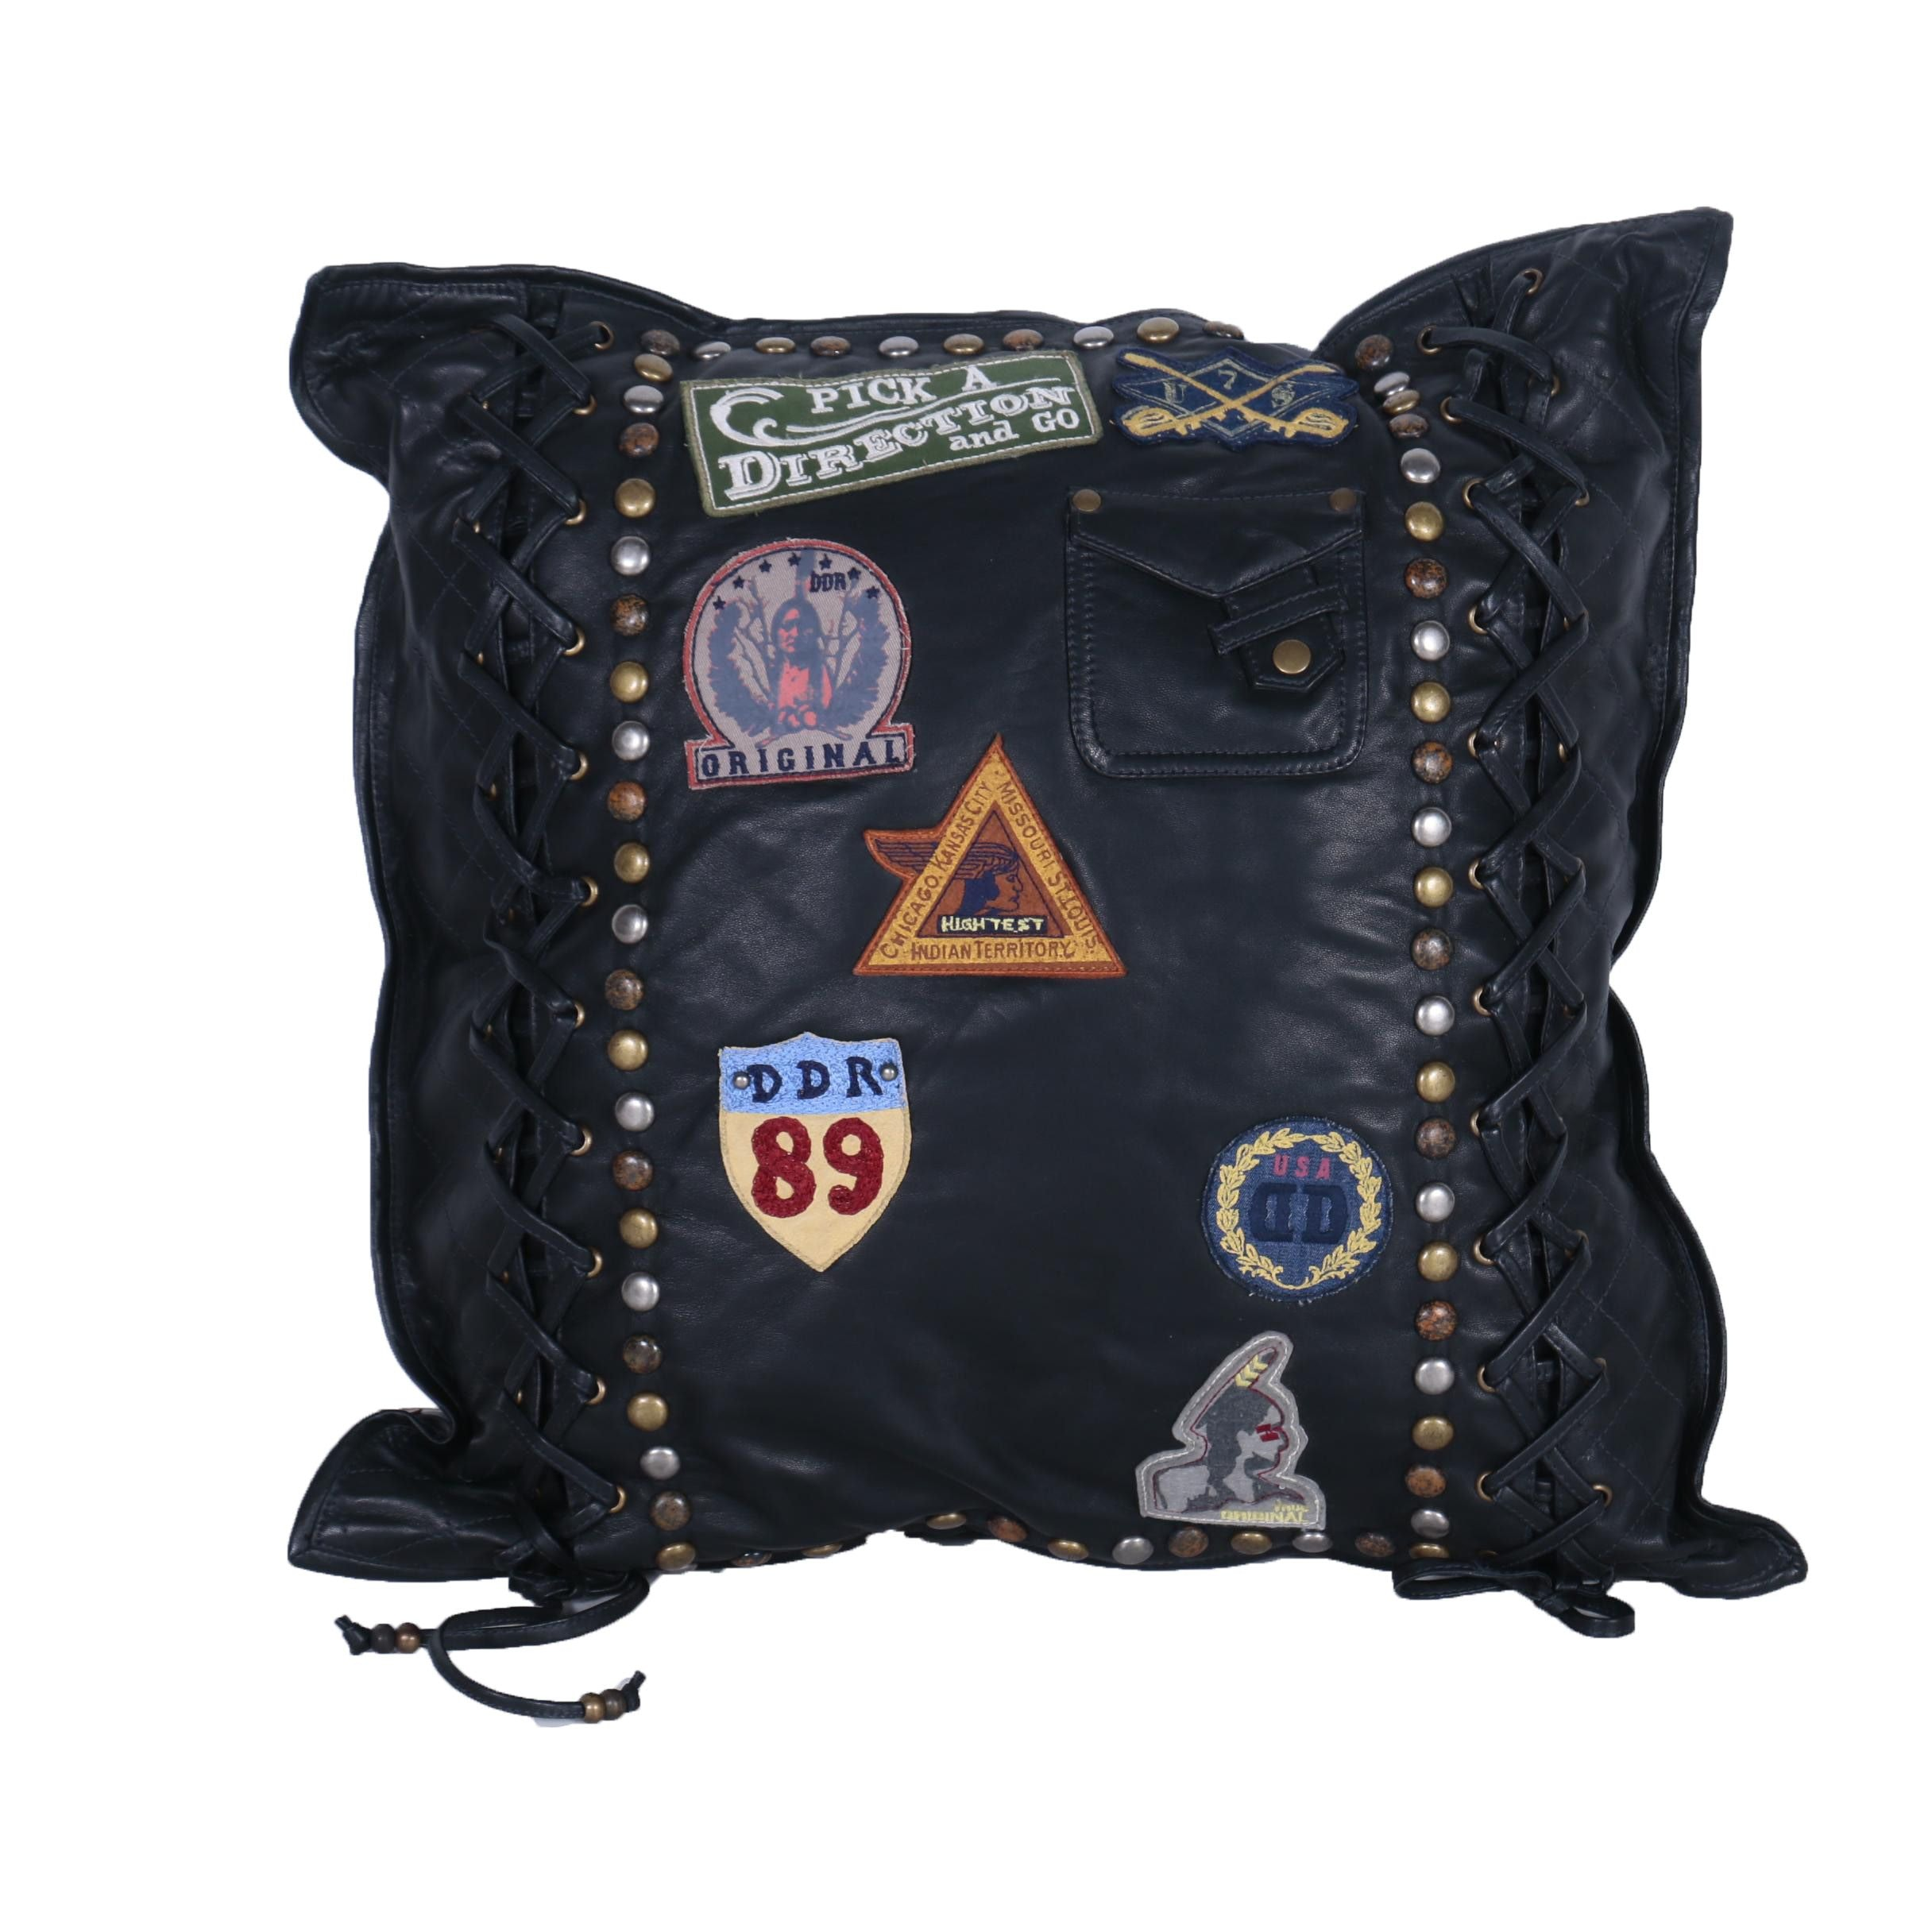 Double D Ranch Black Leather Throw Pillow